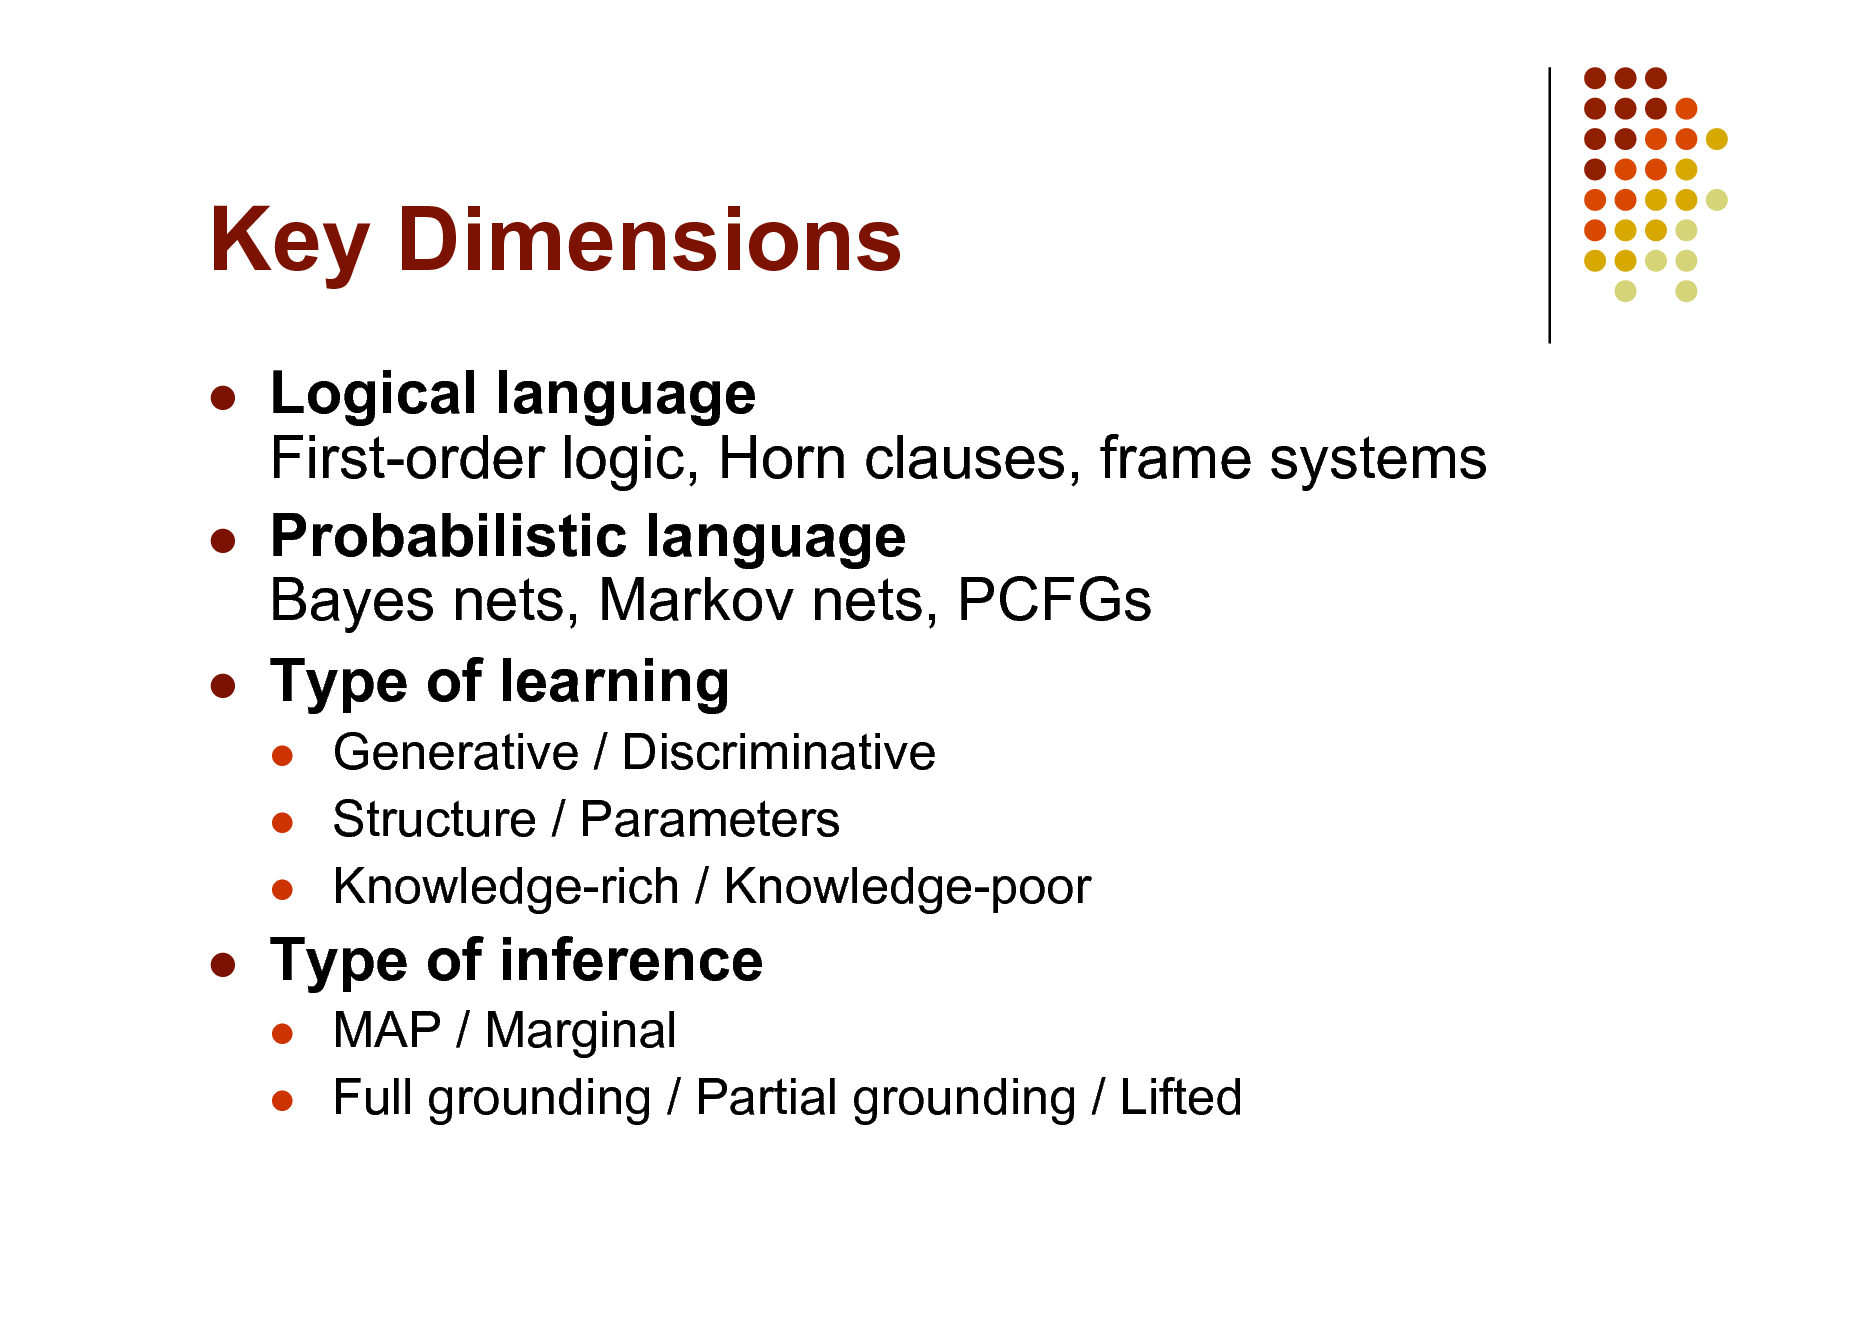 Slide: Key Dimensions     Logical language First-order logic, Horn clauses, frame systems Probabilistic language Bayes nets, Markov nets, PCFGs Type of learning     Generative / Discriminative Structure / Parameters Knowledge-rich / Knowledge-poor MAP / Marginal Full grounding / Partial grounding / Lifted    Type of inference